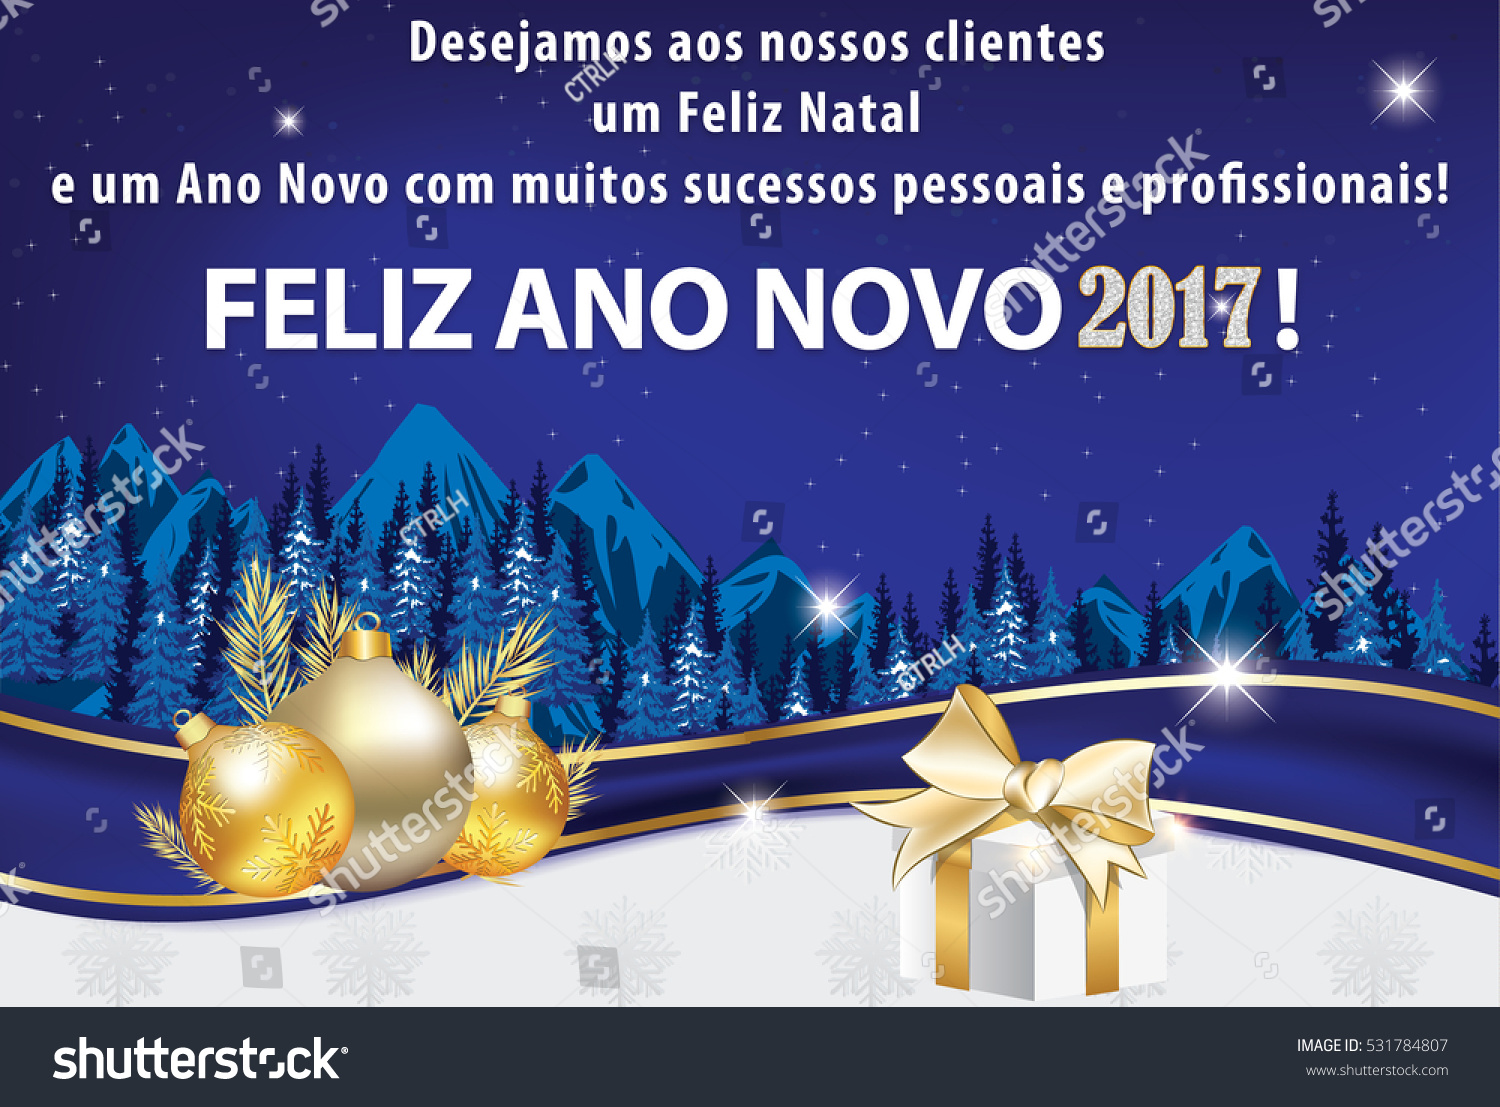 Business portuguese new year greeting card stock illustration business portuguese new year greeting card for clients we wish all our clients merry christmas kristyandbryce Image collections